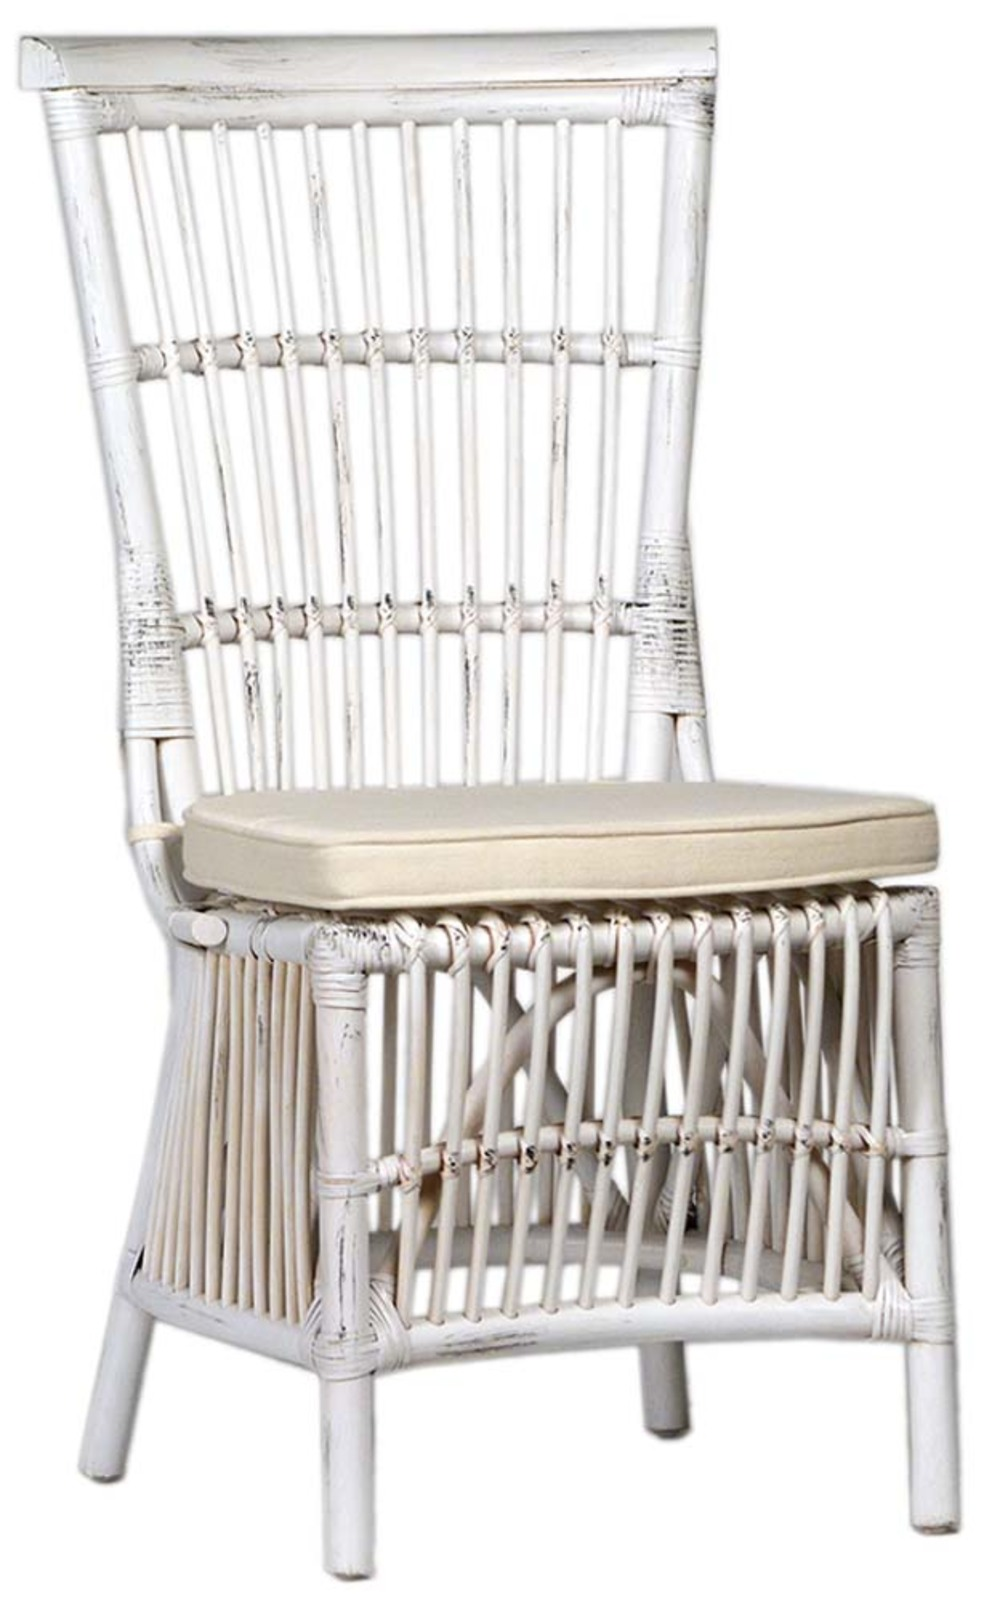 DOVETAIL FURNITURE - Simpson Side Chair